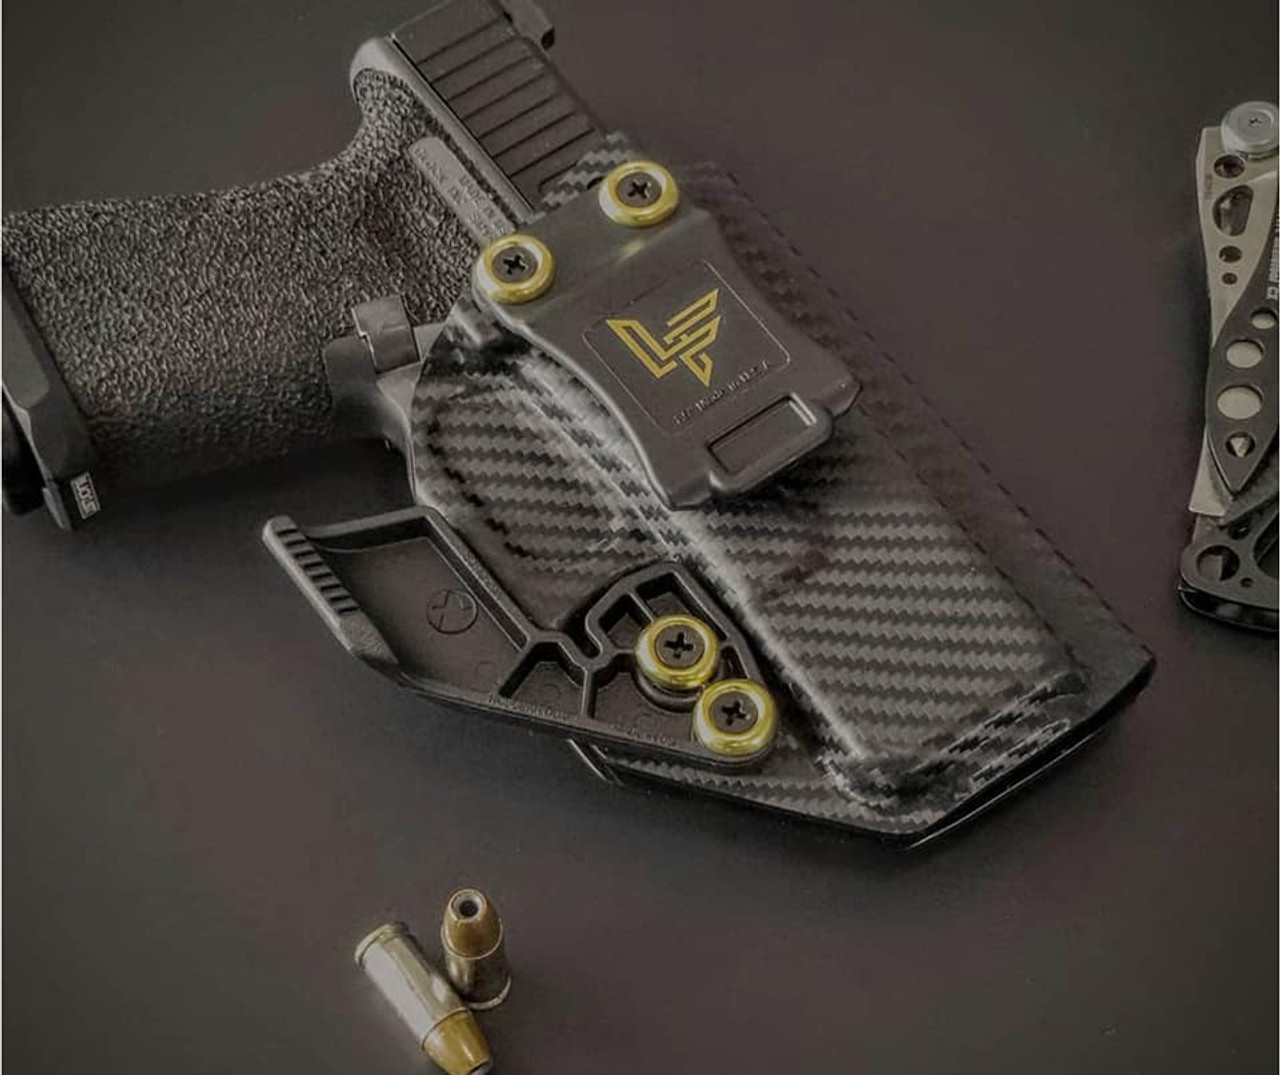 Glock 19 Carbon Fiber Appendix Carry Kydex Holster with Gold Finish Washers